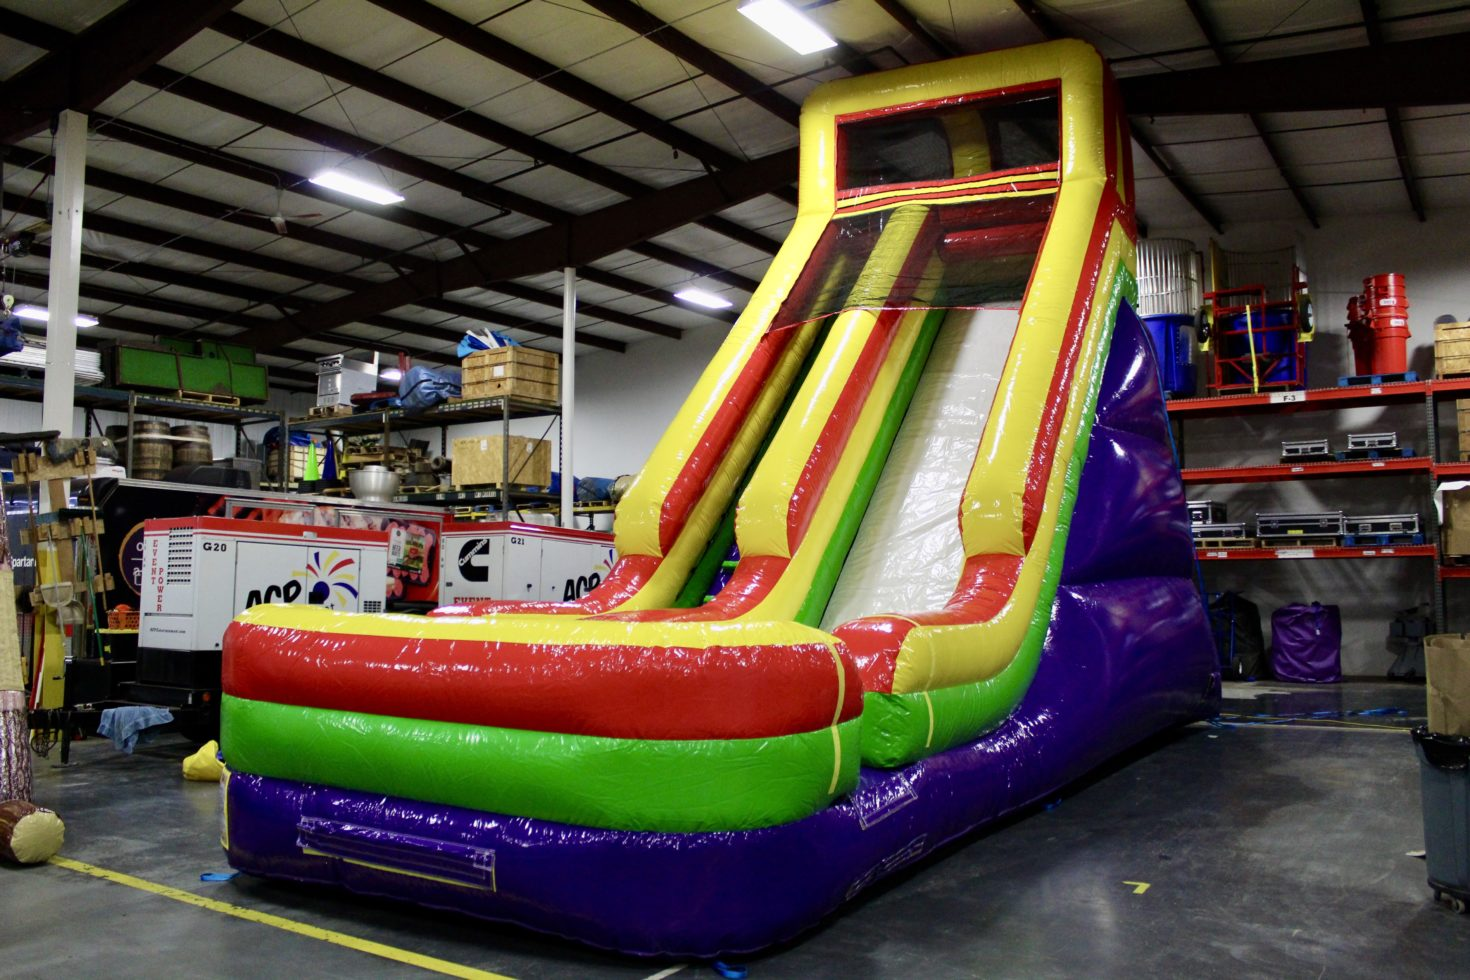 Side angle 24' inflatable commander slide